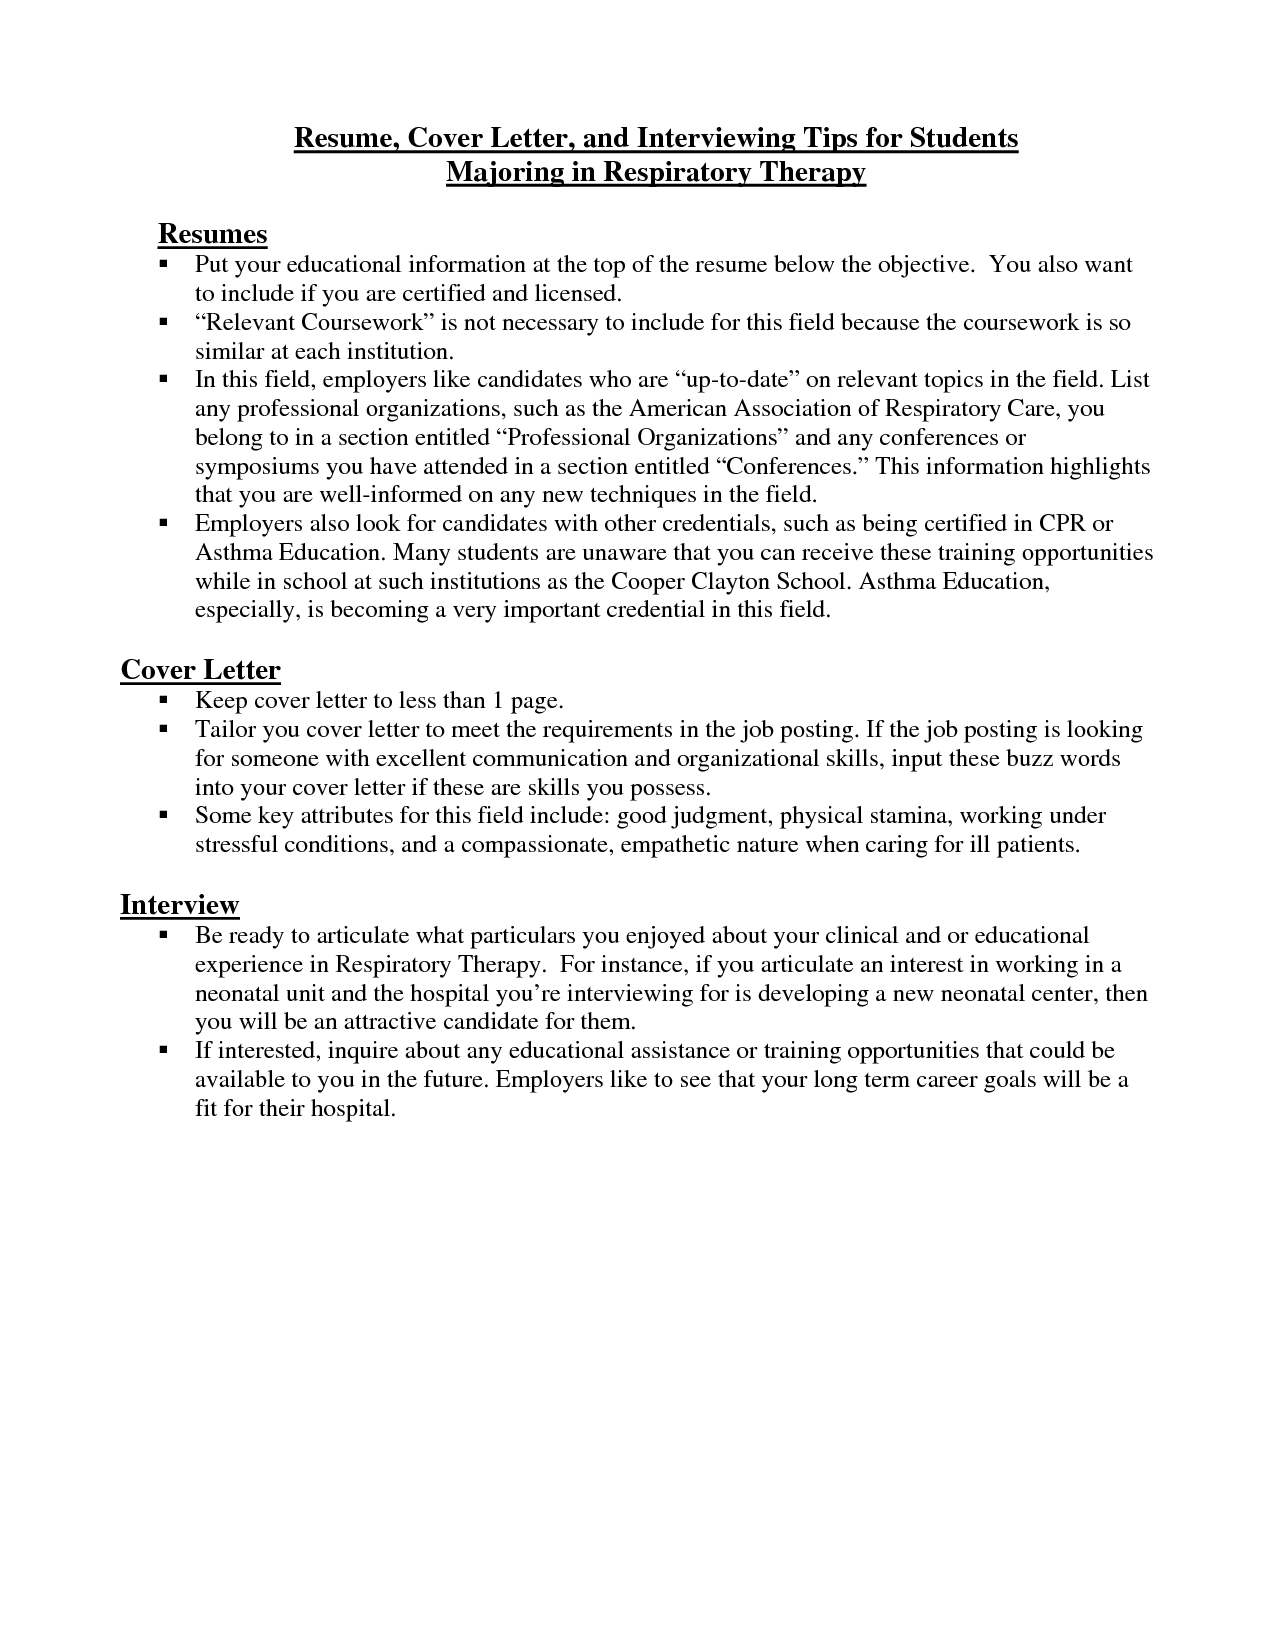 respiratory therapist cover letter | Resume Cover Letter and ...